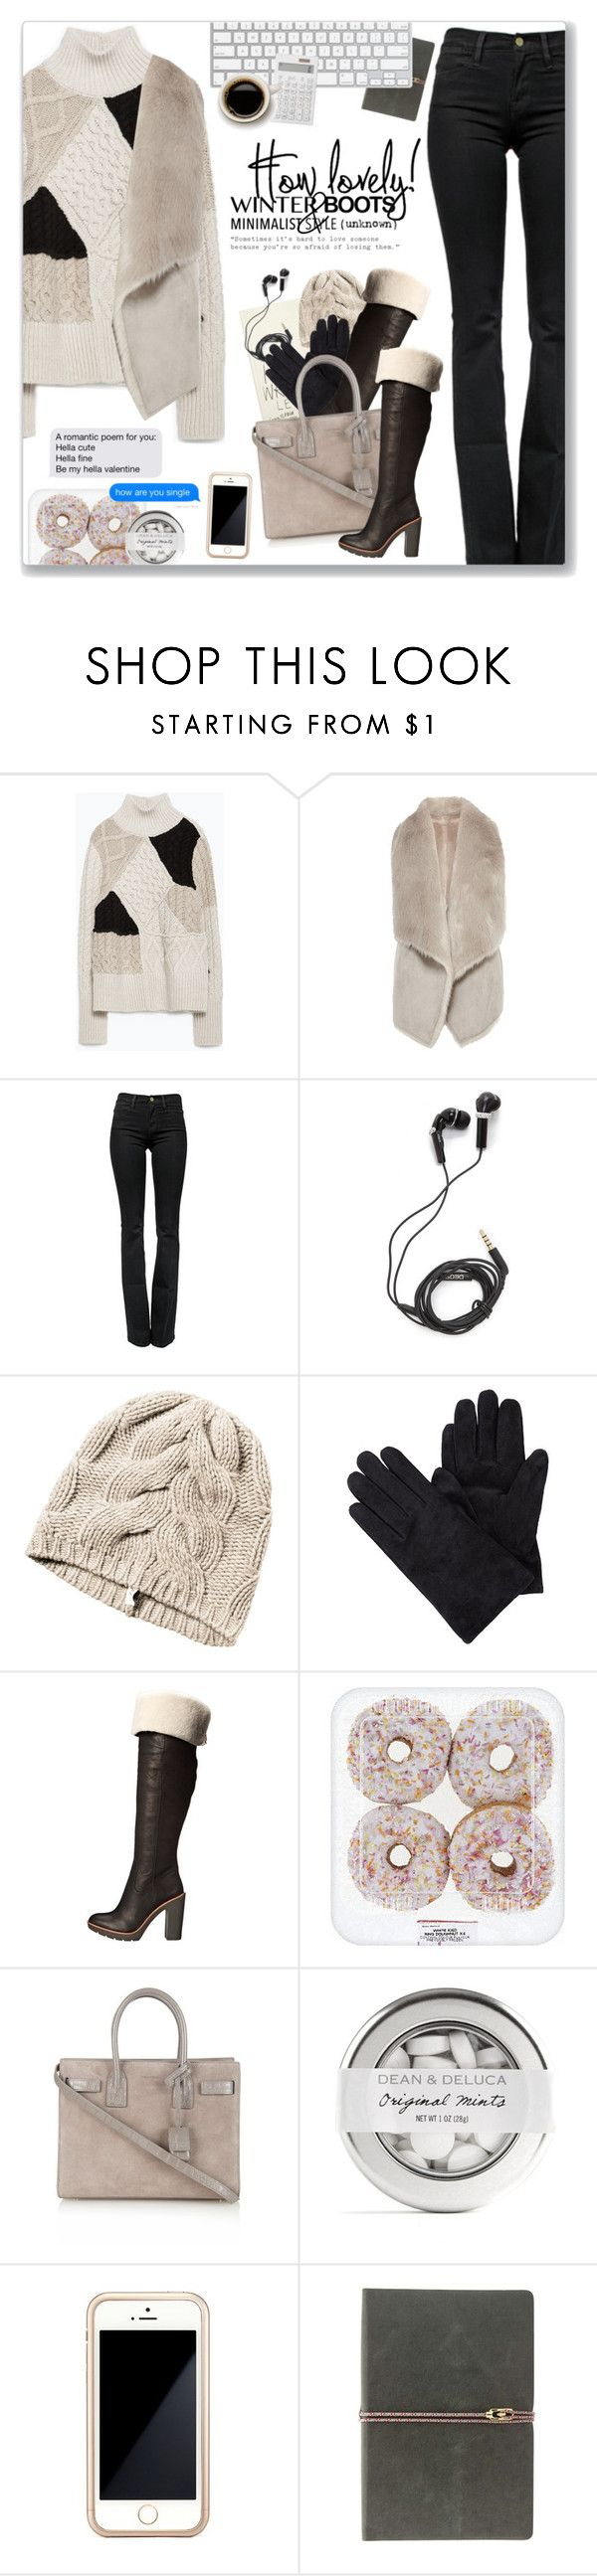 """""""Imbranato, Tiziano Ferro"""" by blendasantos ❤ liked on Polyvore featuring Zara, Coast, Frame, DEOS, Kate Spade, Yves Saint Laurent, Squair, Love Quotes Scarves, Muji and Minimaliststyle"""